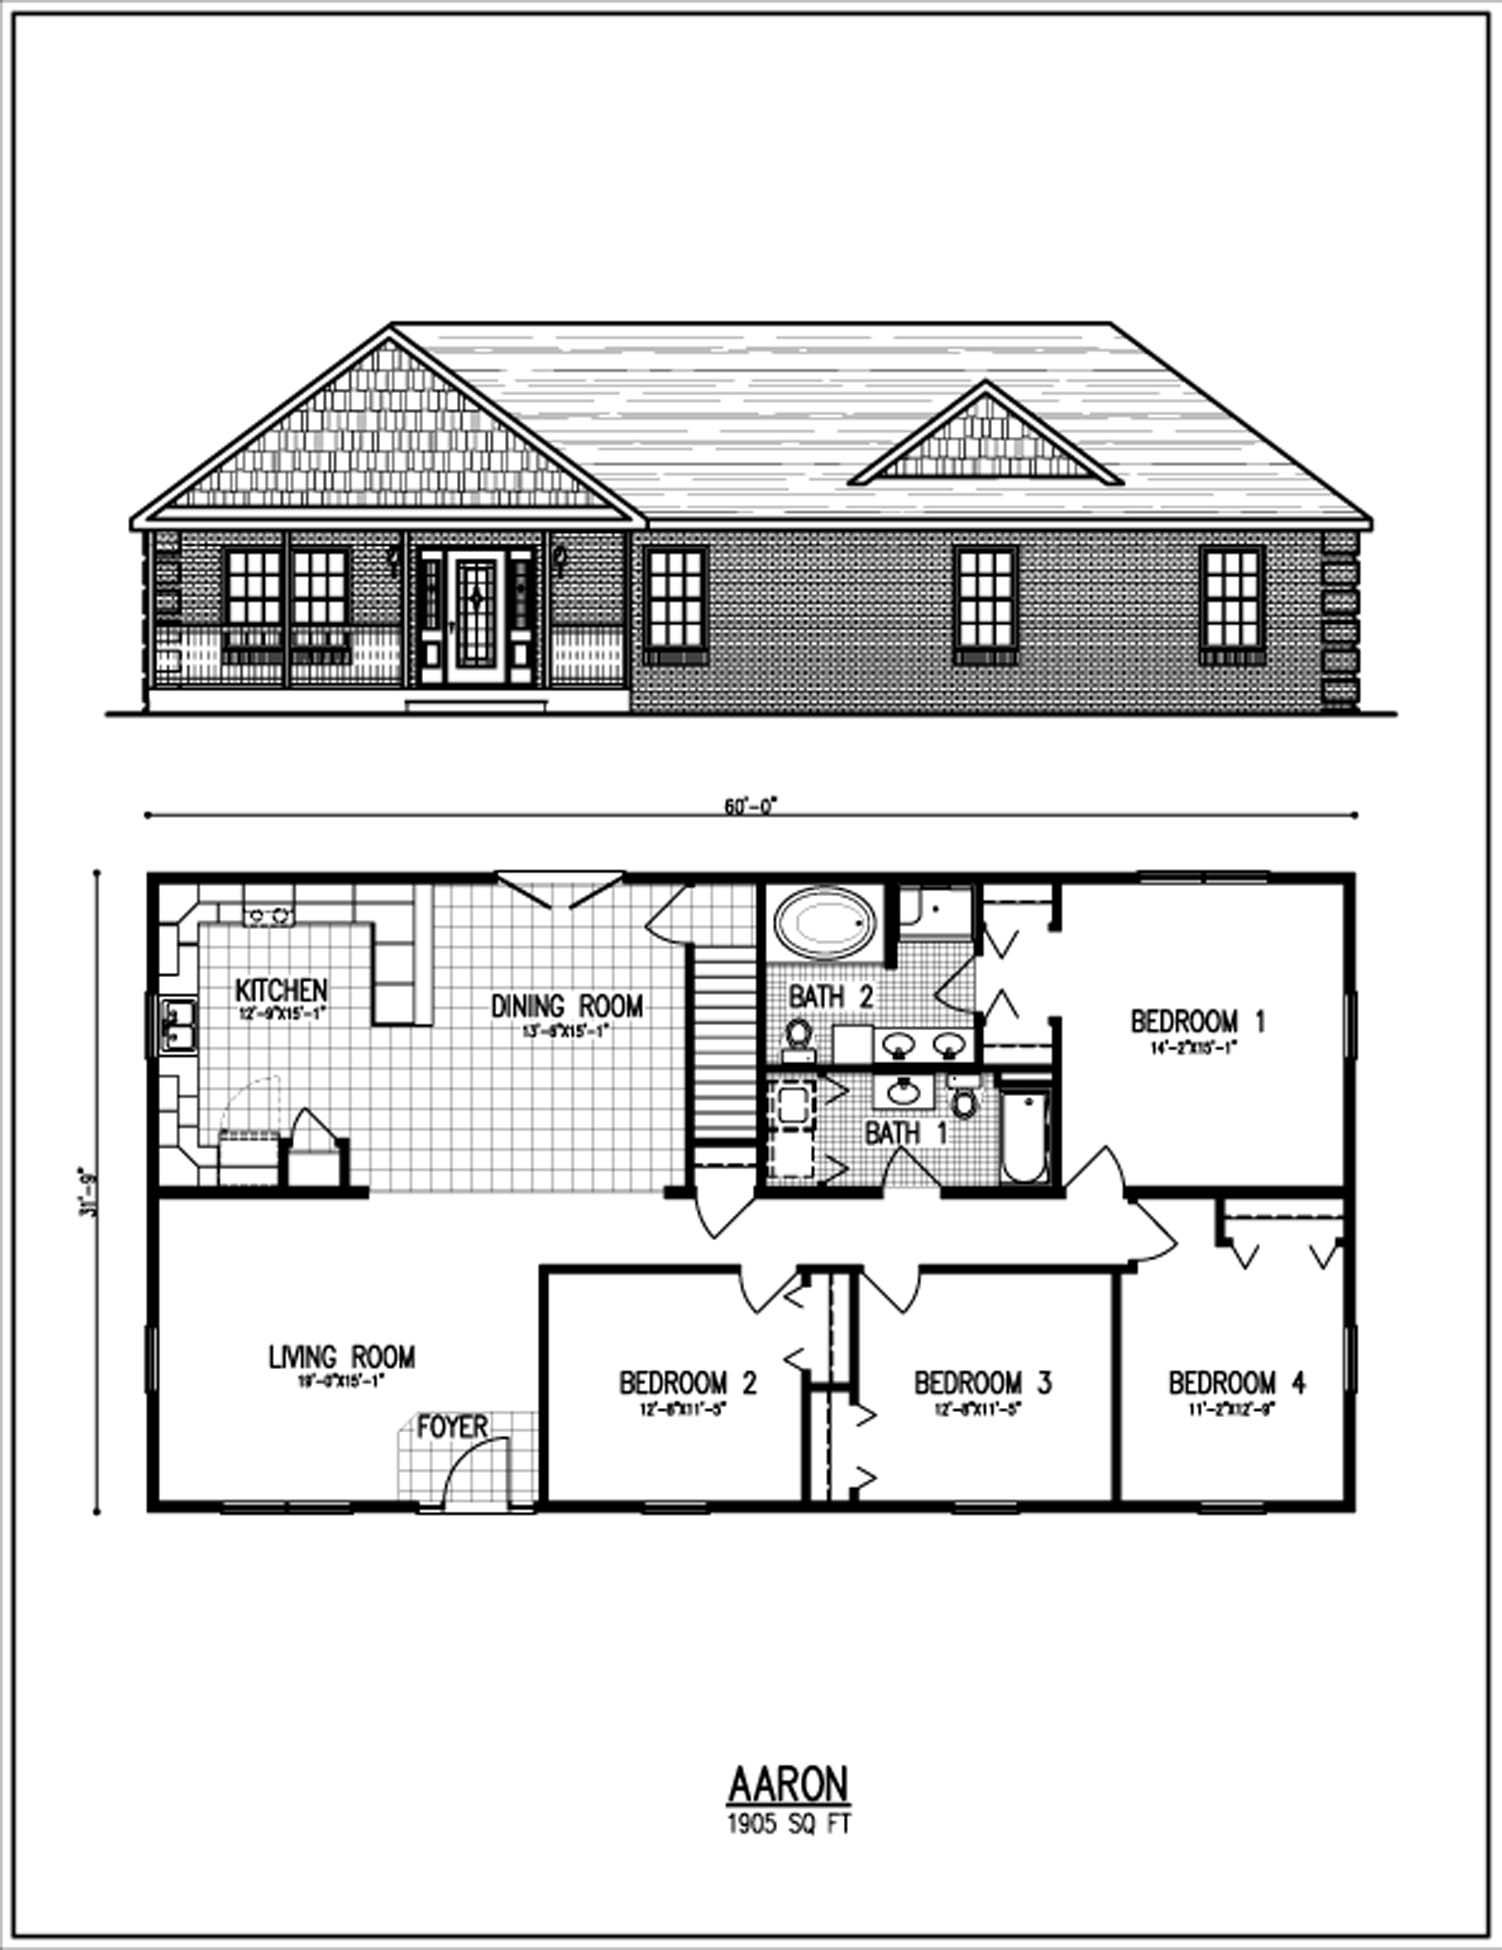 All american homes floorplan center staffordcape for House plans maker